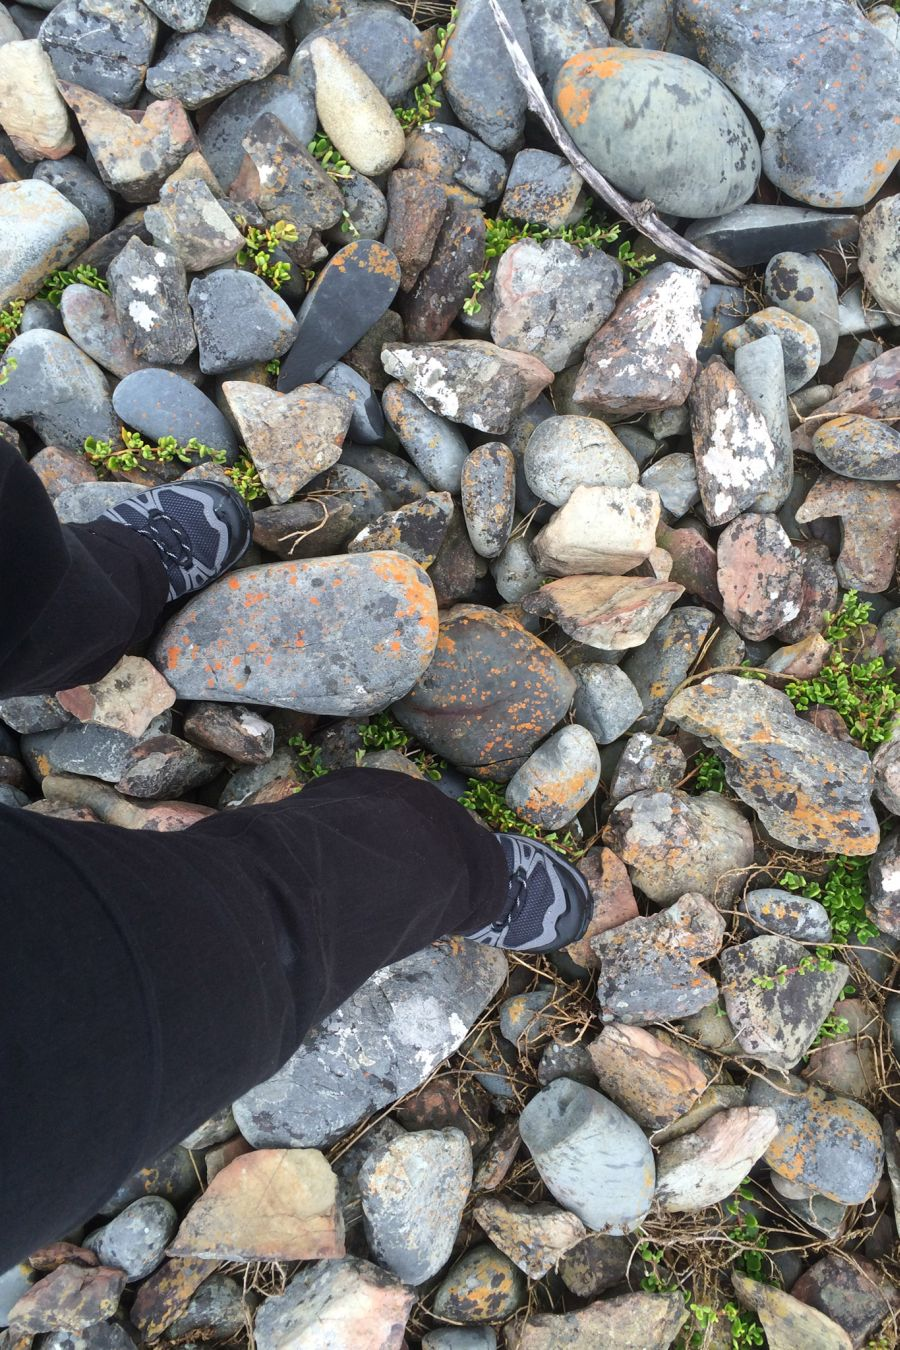 My hiking boots gave me confidence to walk on uneven ground